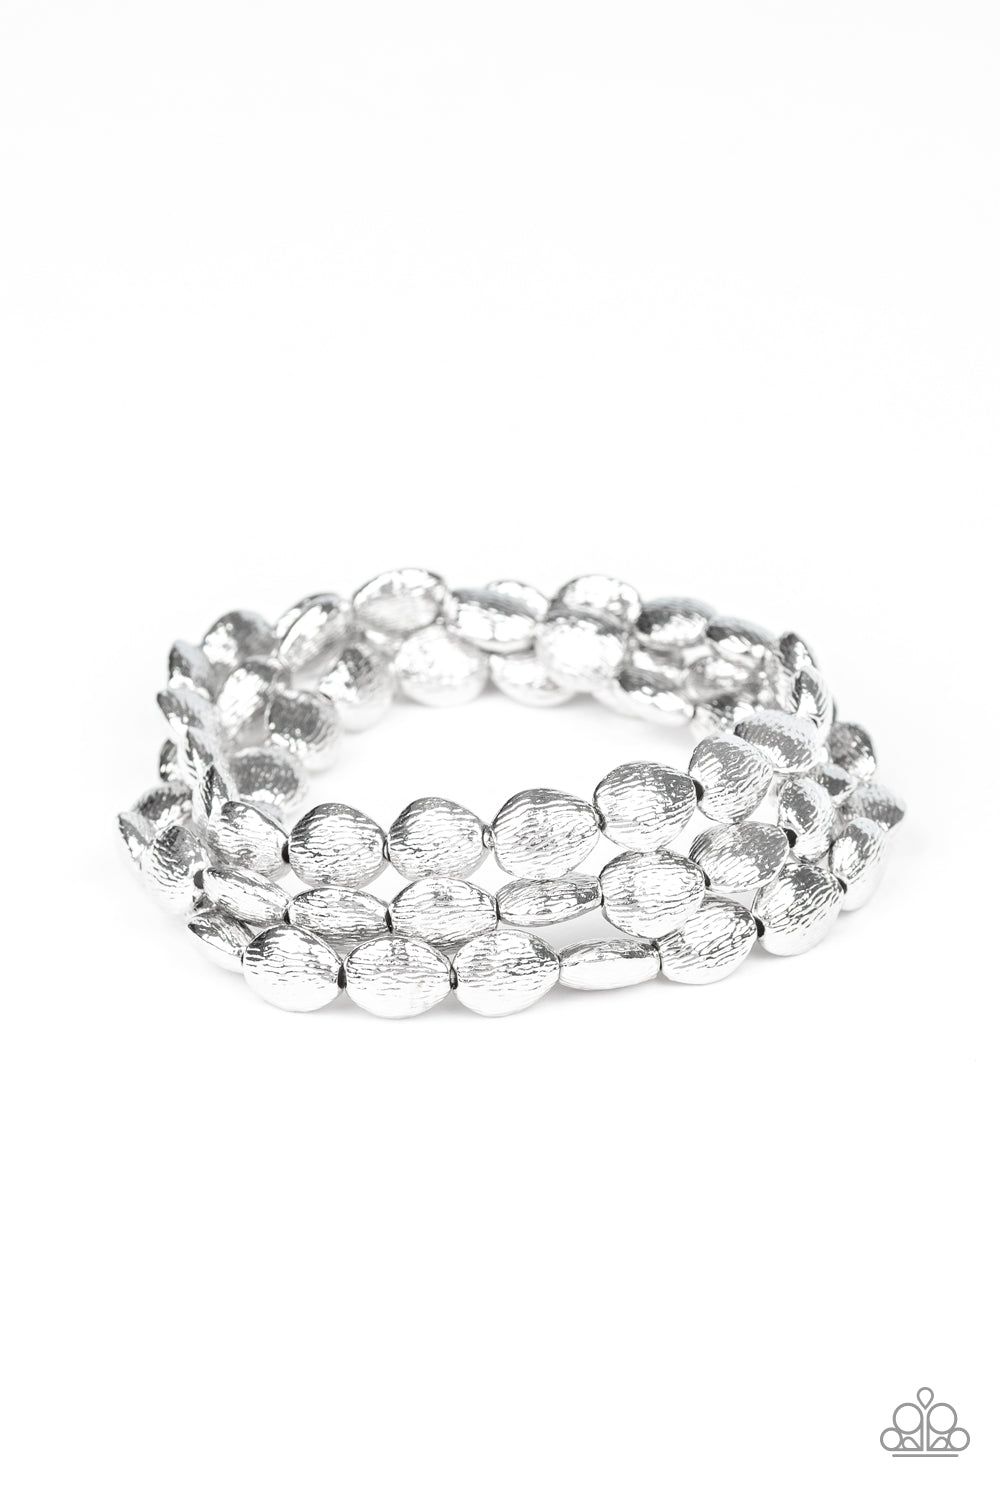 Basic Bliss Silver Bracelet